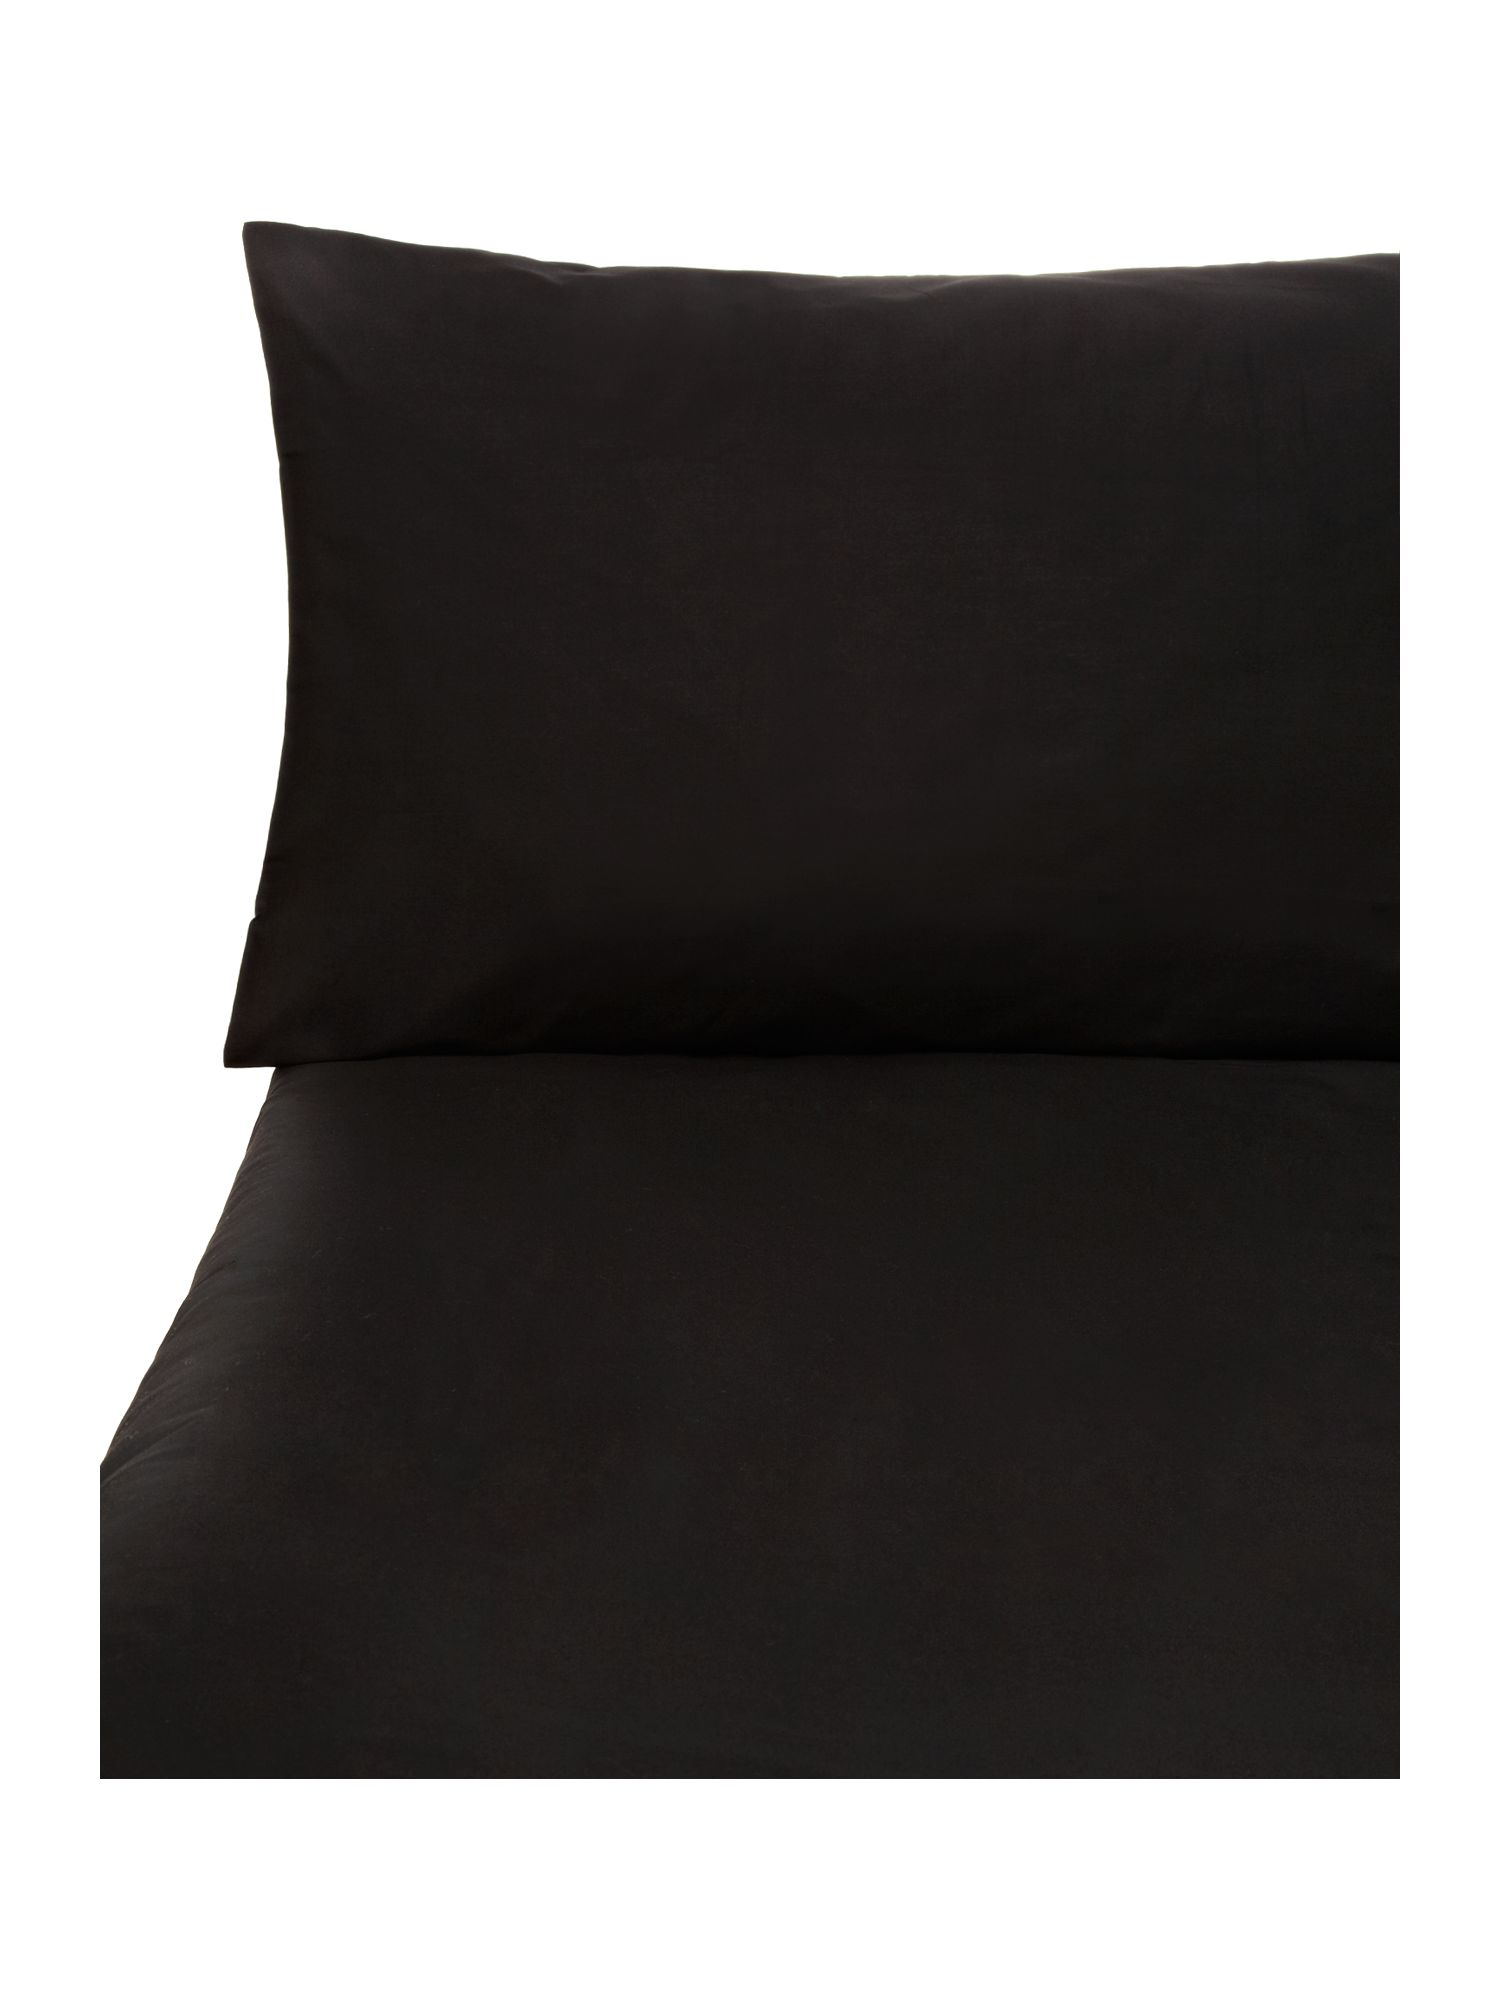 Black fitted sheet single